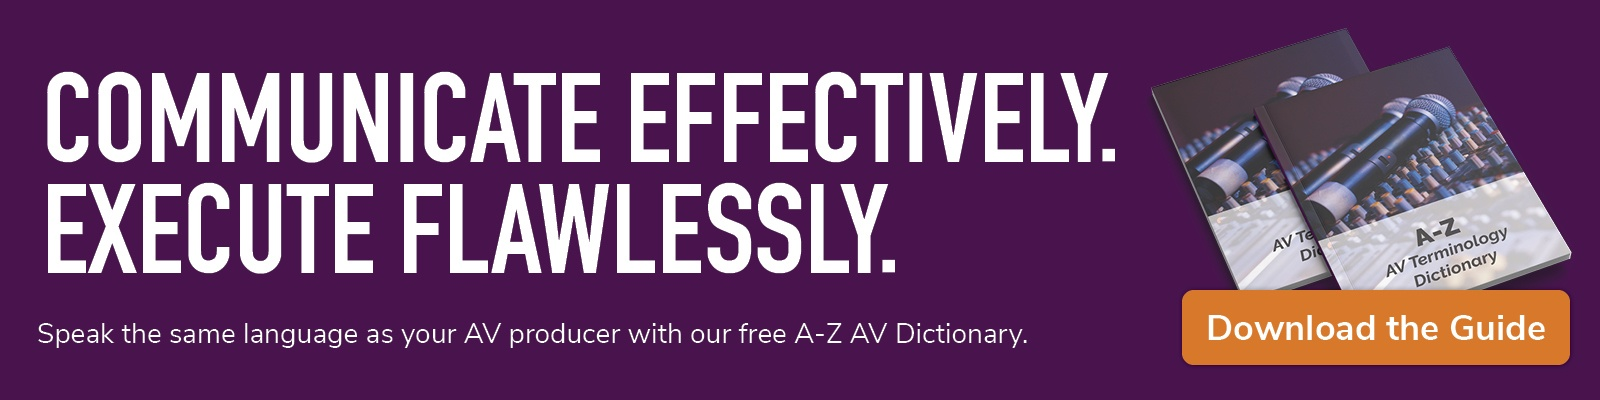 communicate effectively; execute flawlessly; speak the same language as your AV producer with our free a-z AV dictionary; download the guide